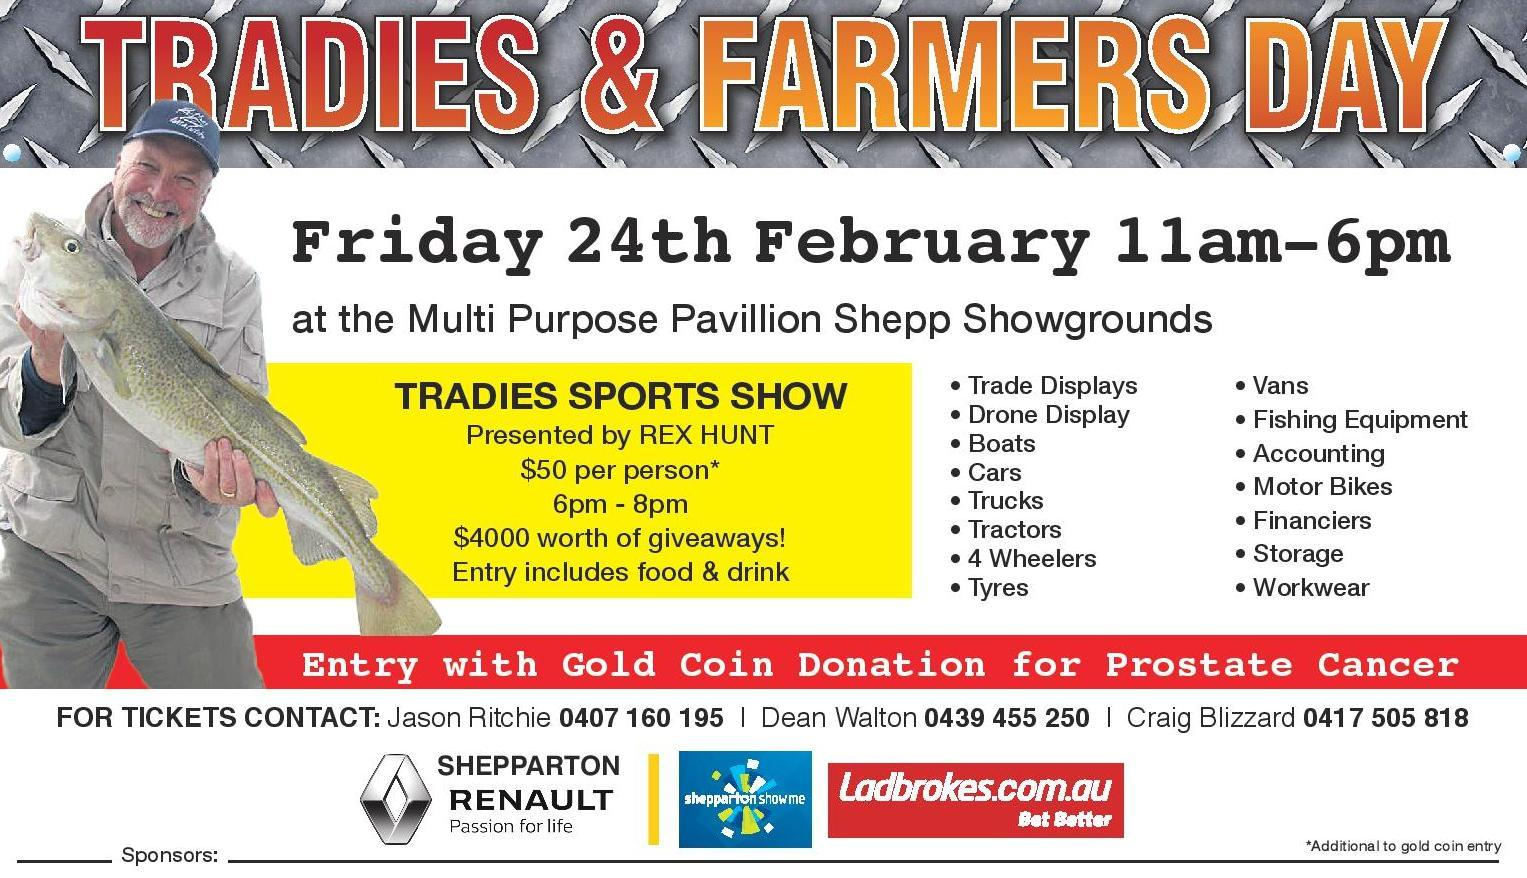 Tradies and Farmers Day